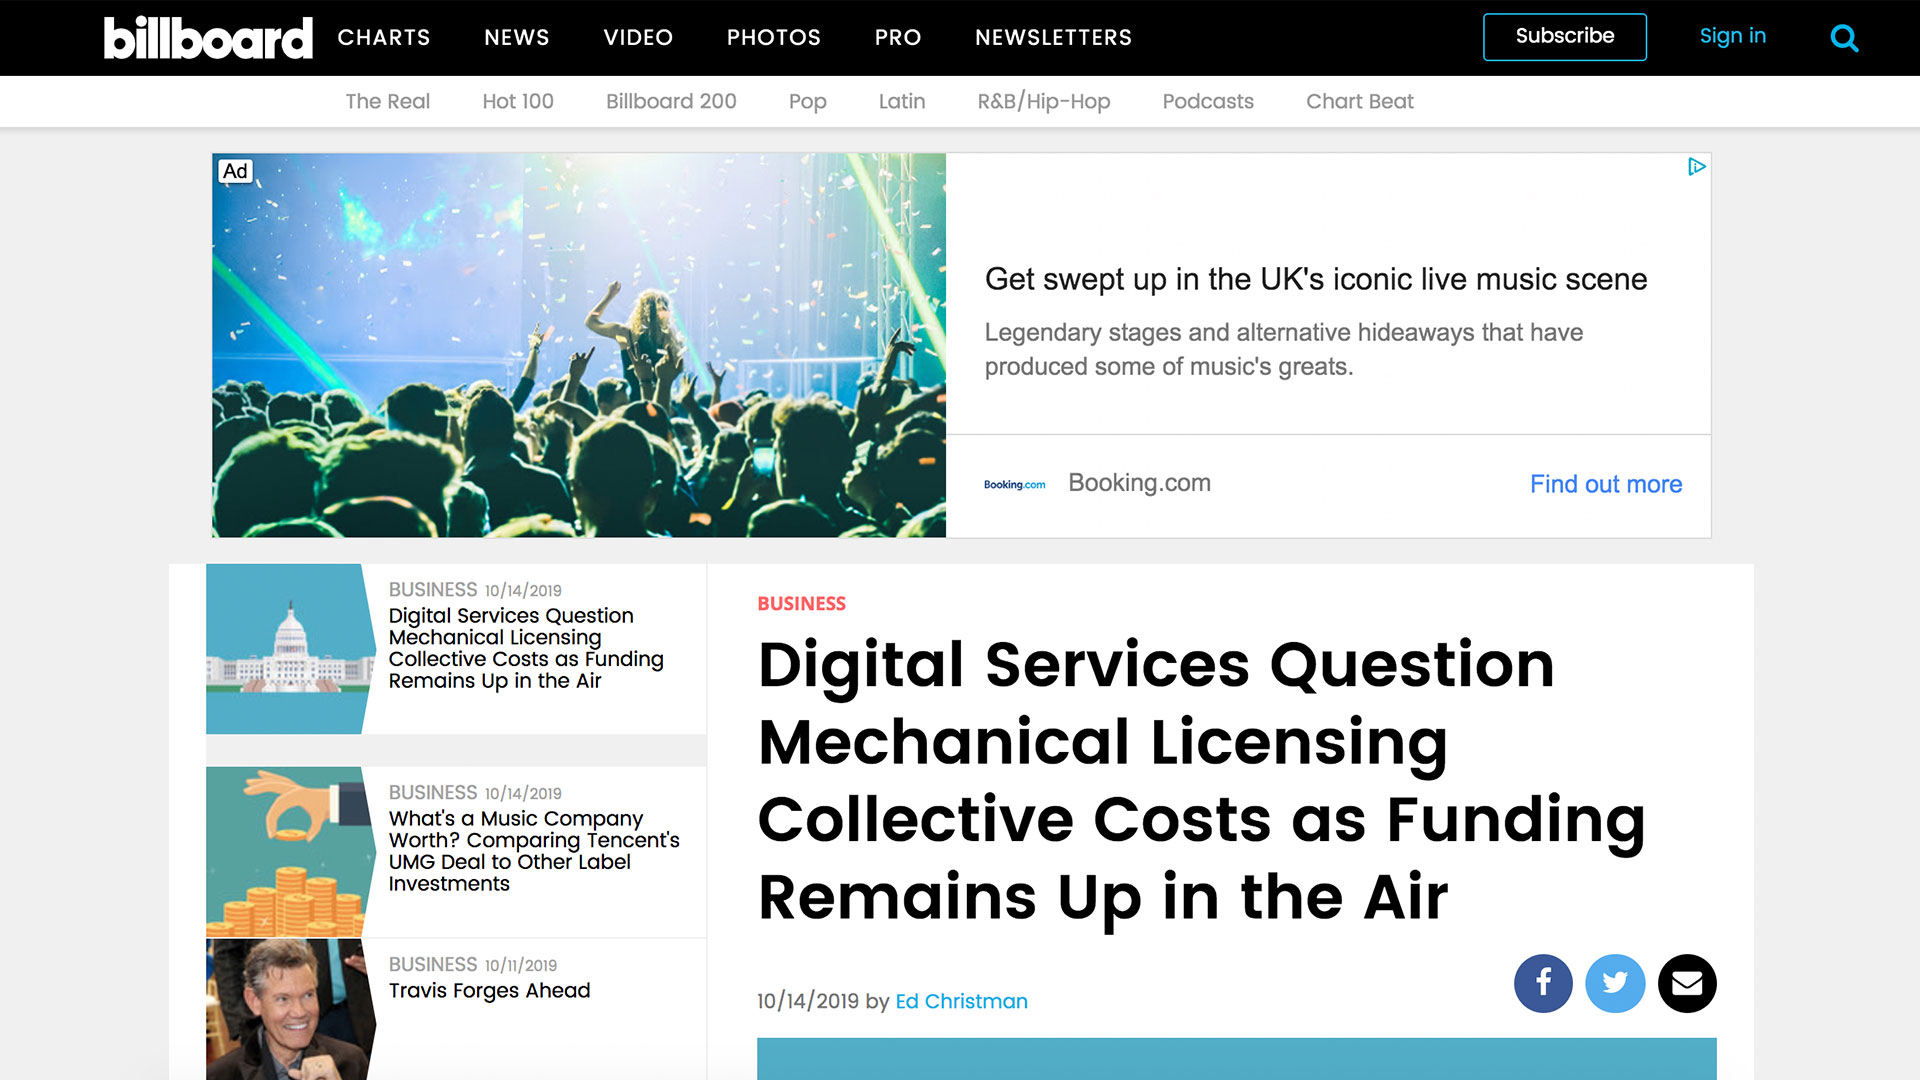 Fairness Rocks News Digital Services Question Mechanical Licensing Collective Costs as Funding Remains Up in the Air